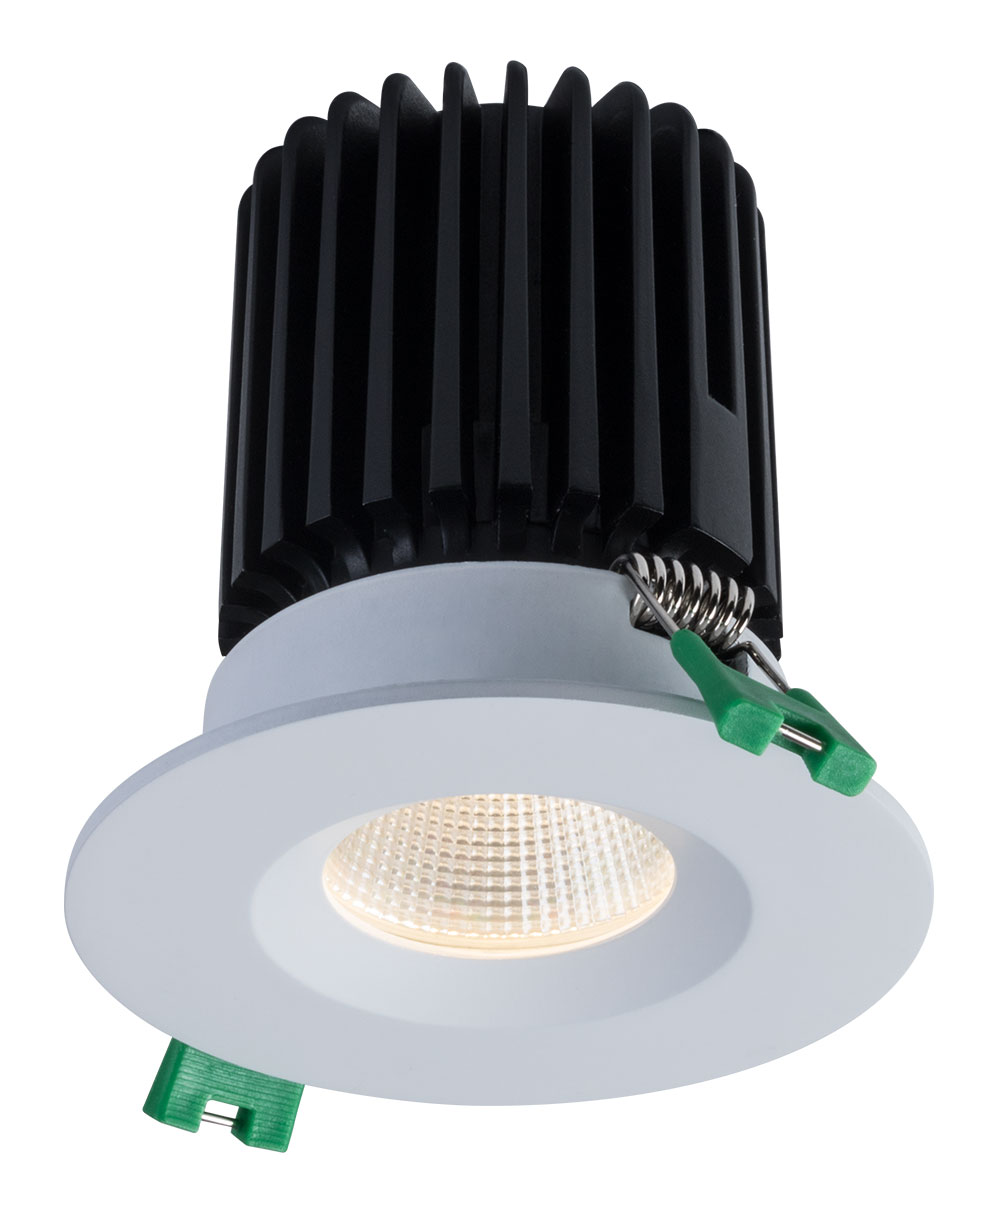 Sigma 2 Round Regressed LED Fixture for Wet Locations